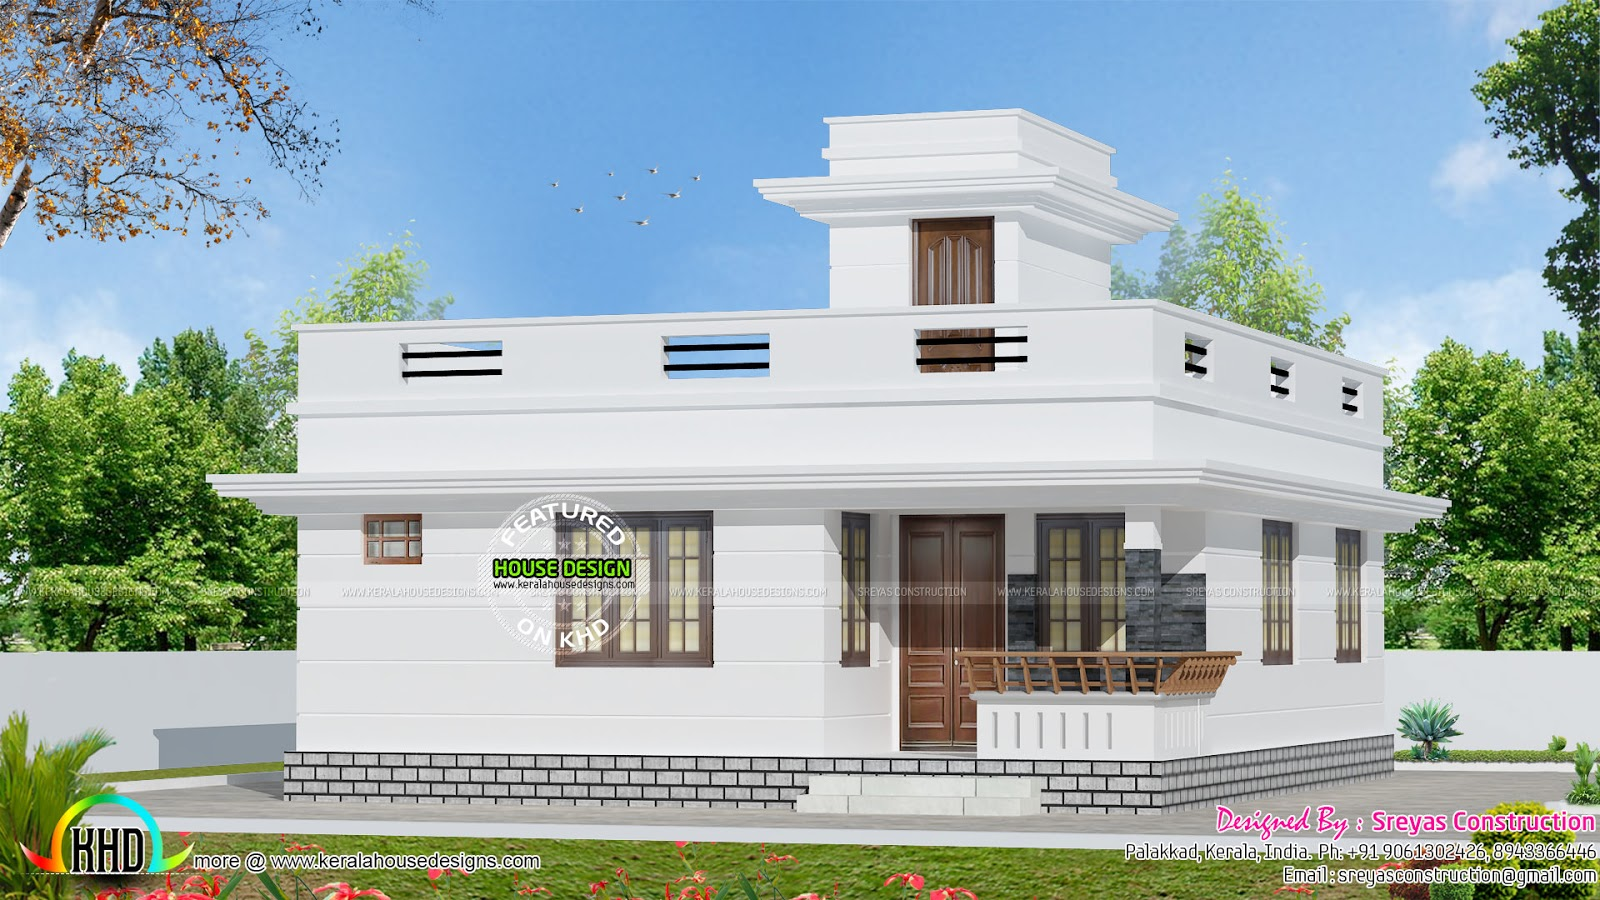 882 sq ft small house architecture kerala home design for Kerala house construction plans